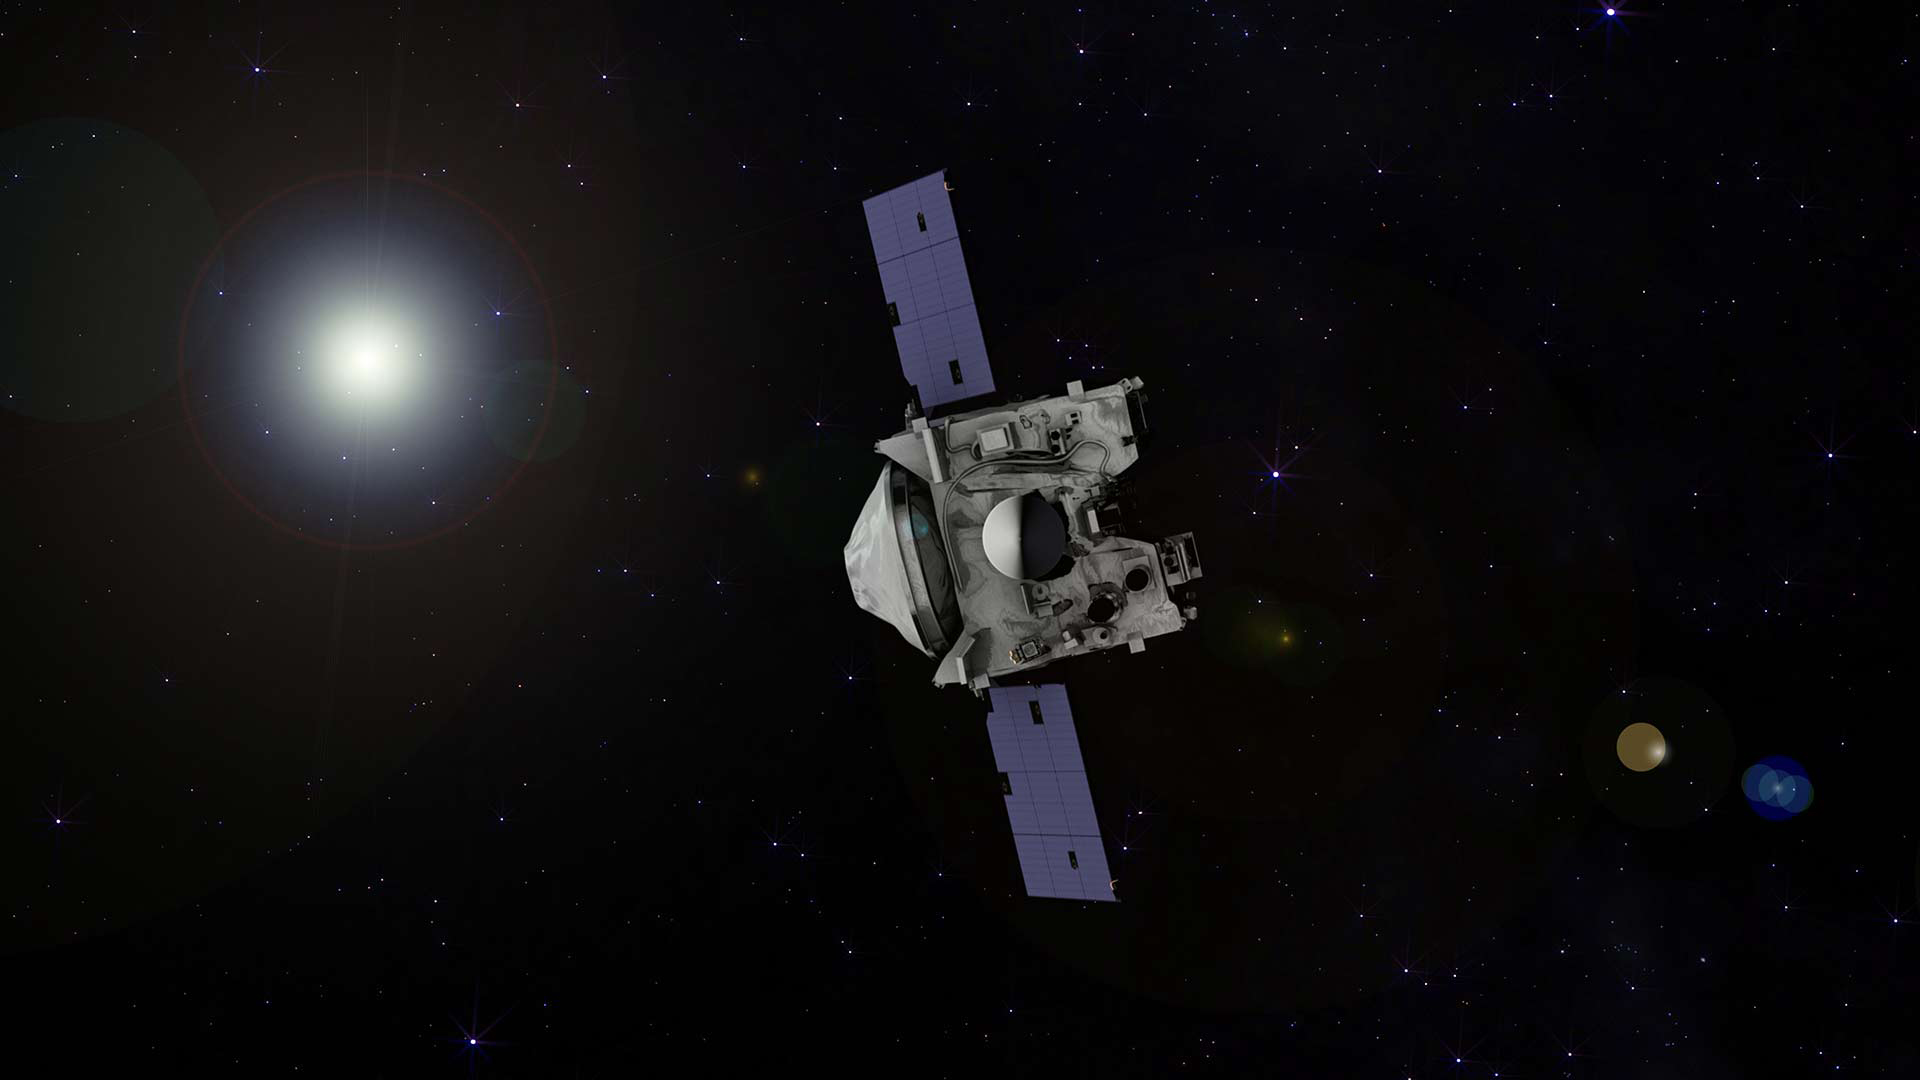 OSIRIS-REx completes a 26-month journey to the asteroid Bennu on Monday.